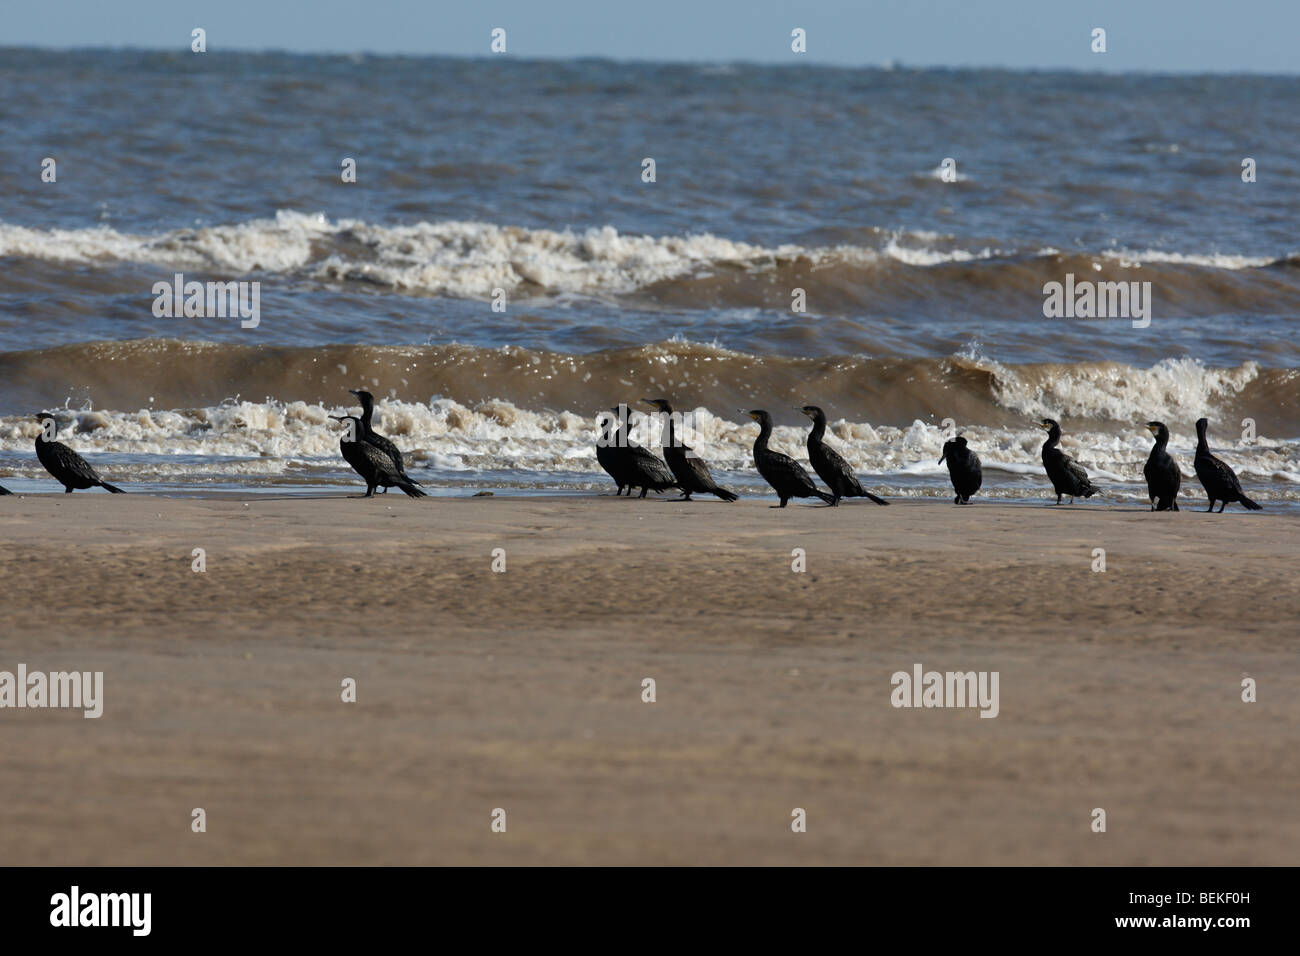 Cormorants (Phalacrocorax carbo) resting on beach - Stock Image